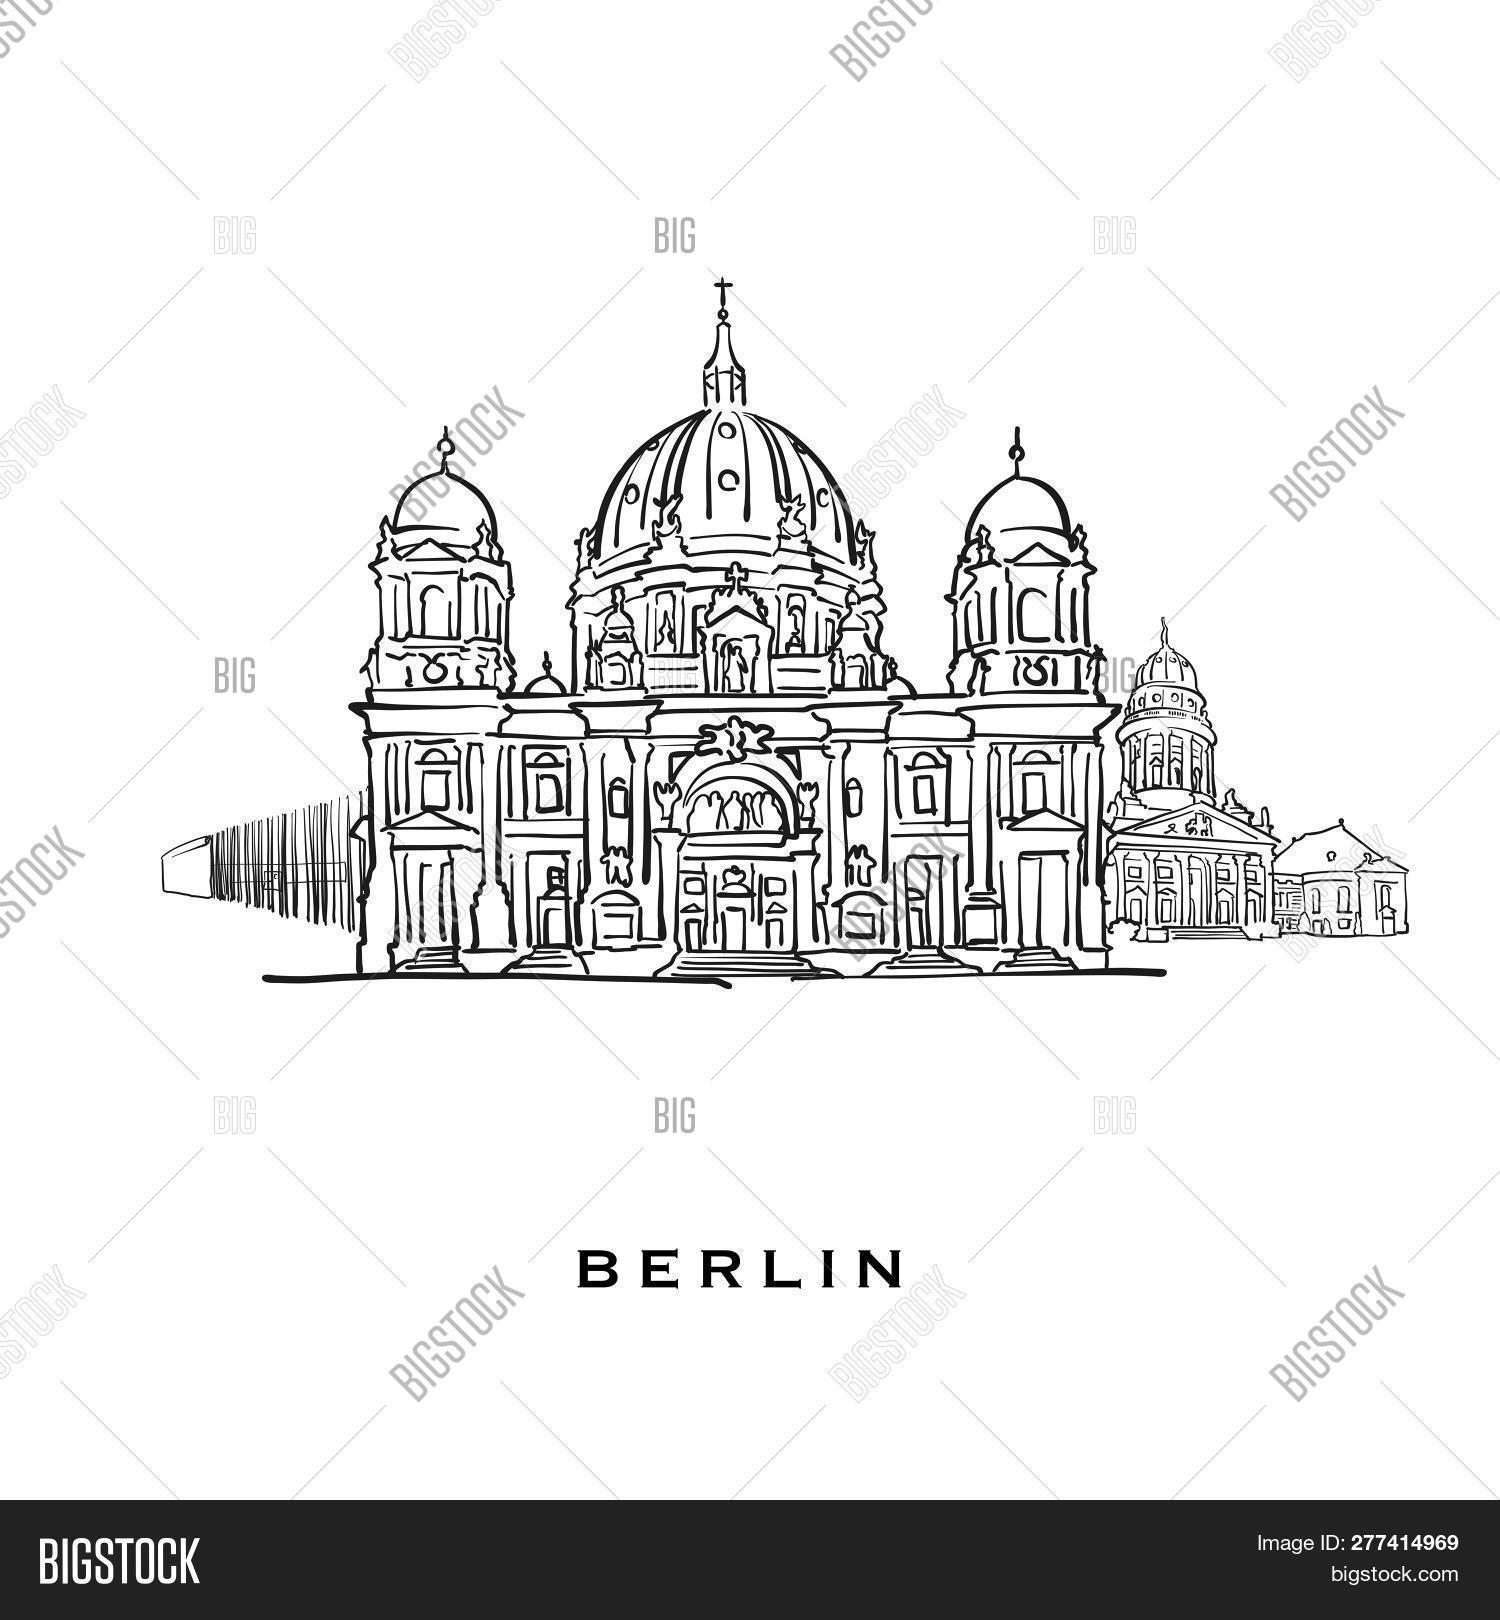 Berlin Germany Famous Vector & Photo (Free Trial) | Bigstock